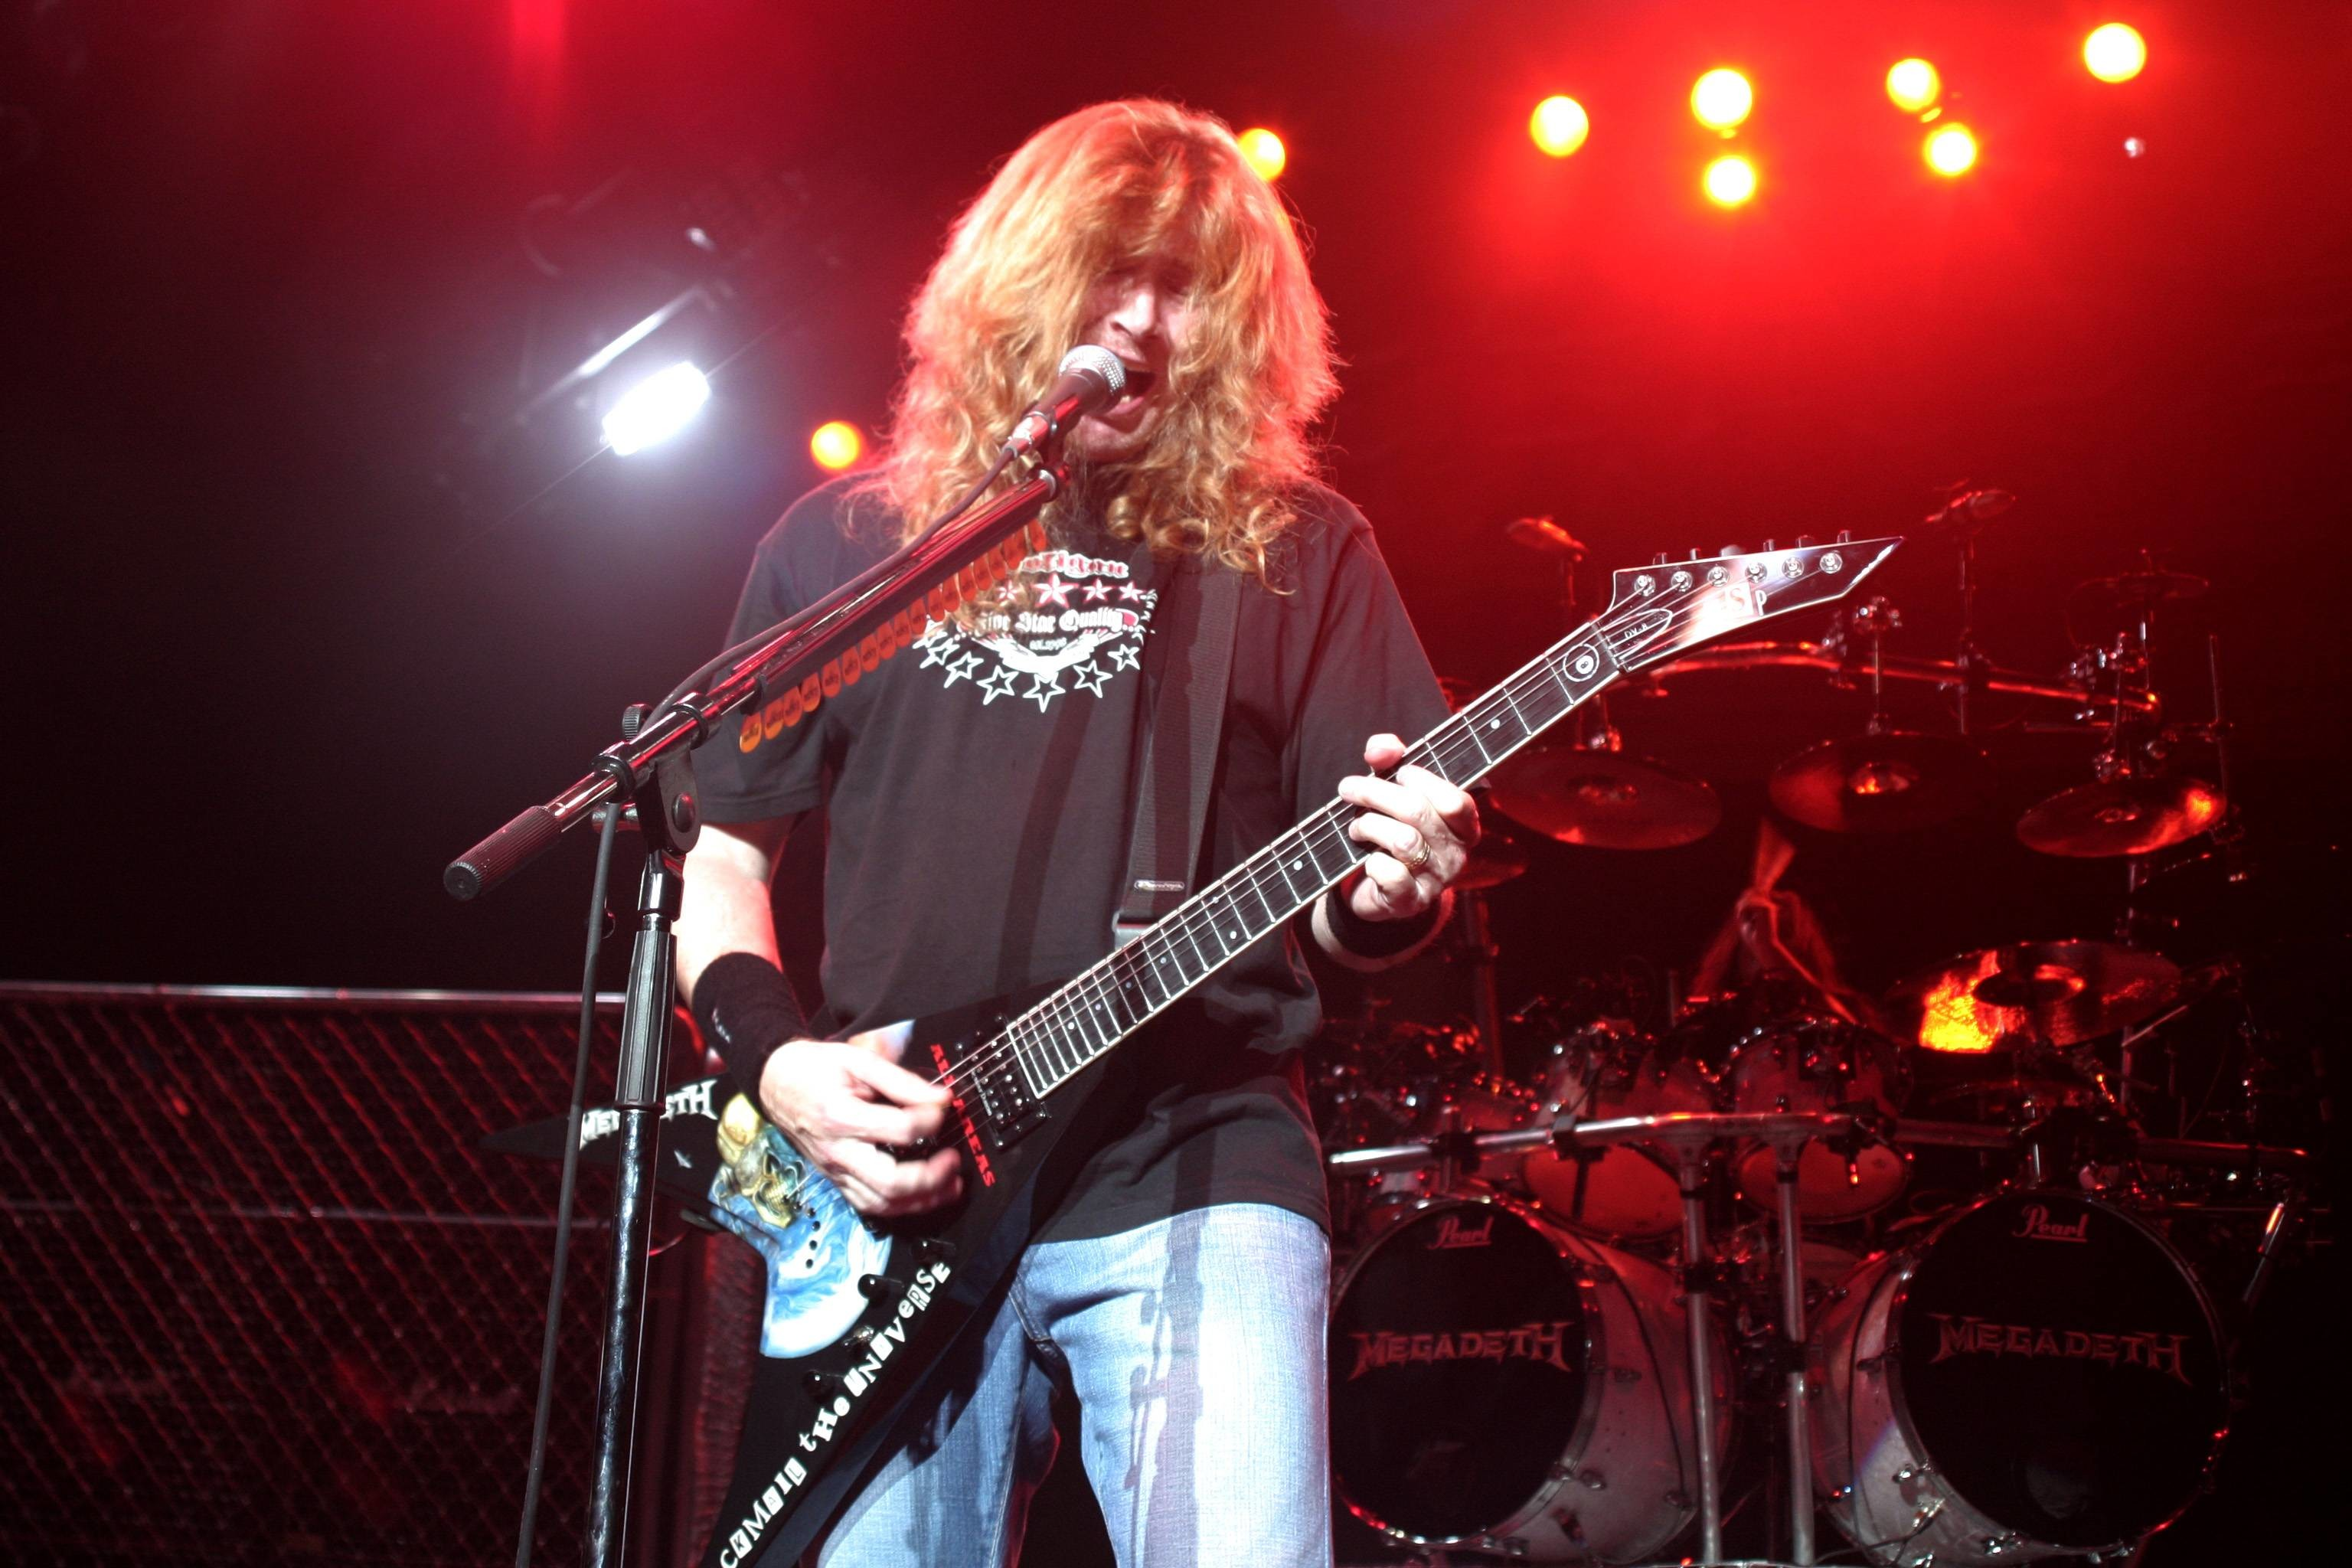 Dave Mustaine Megadeth Wallpaper Hd Other